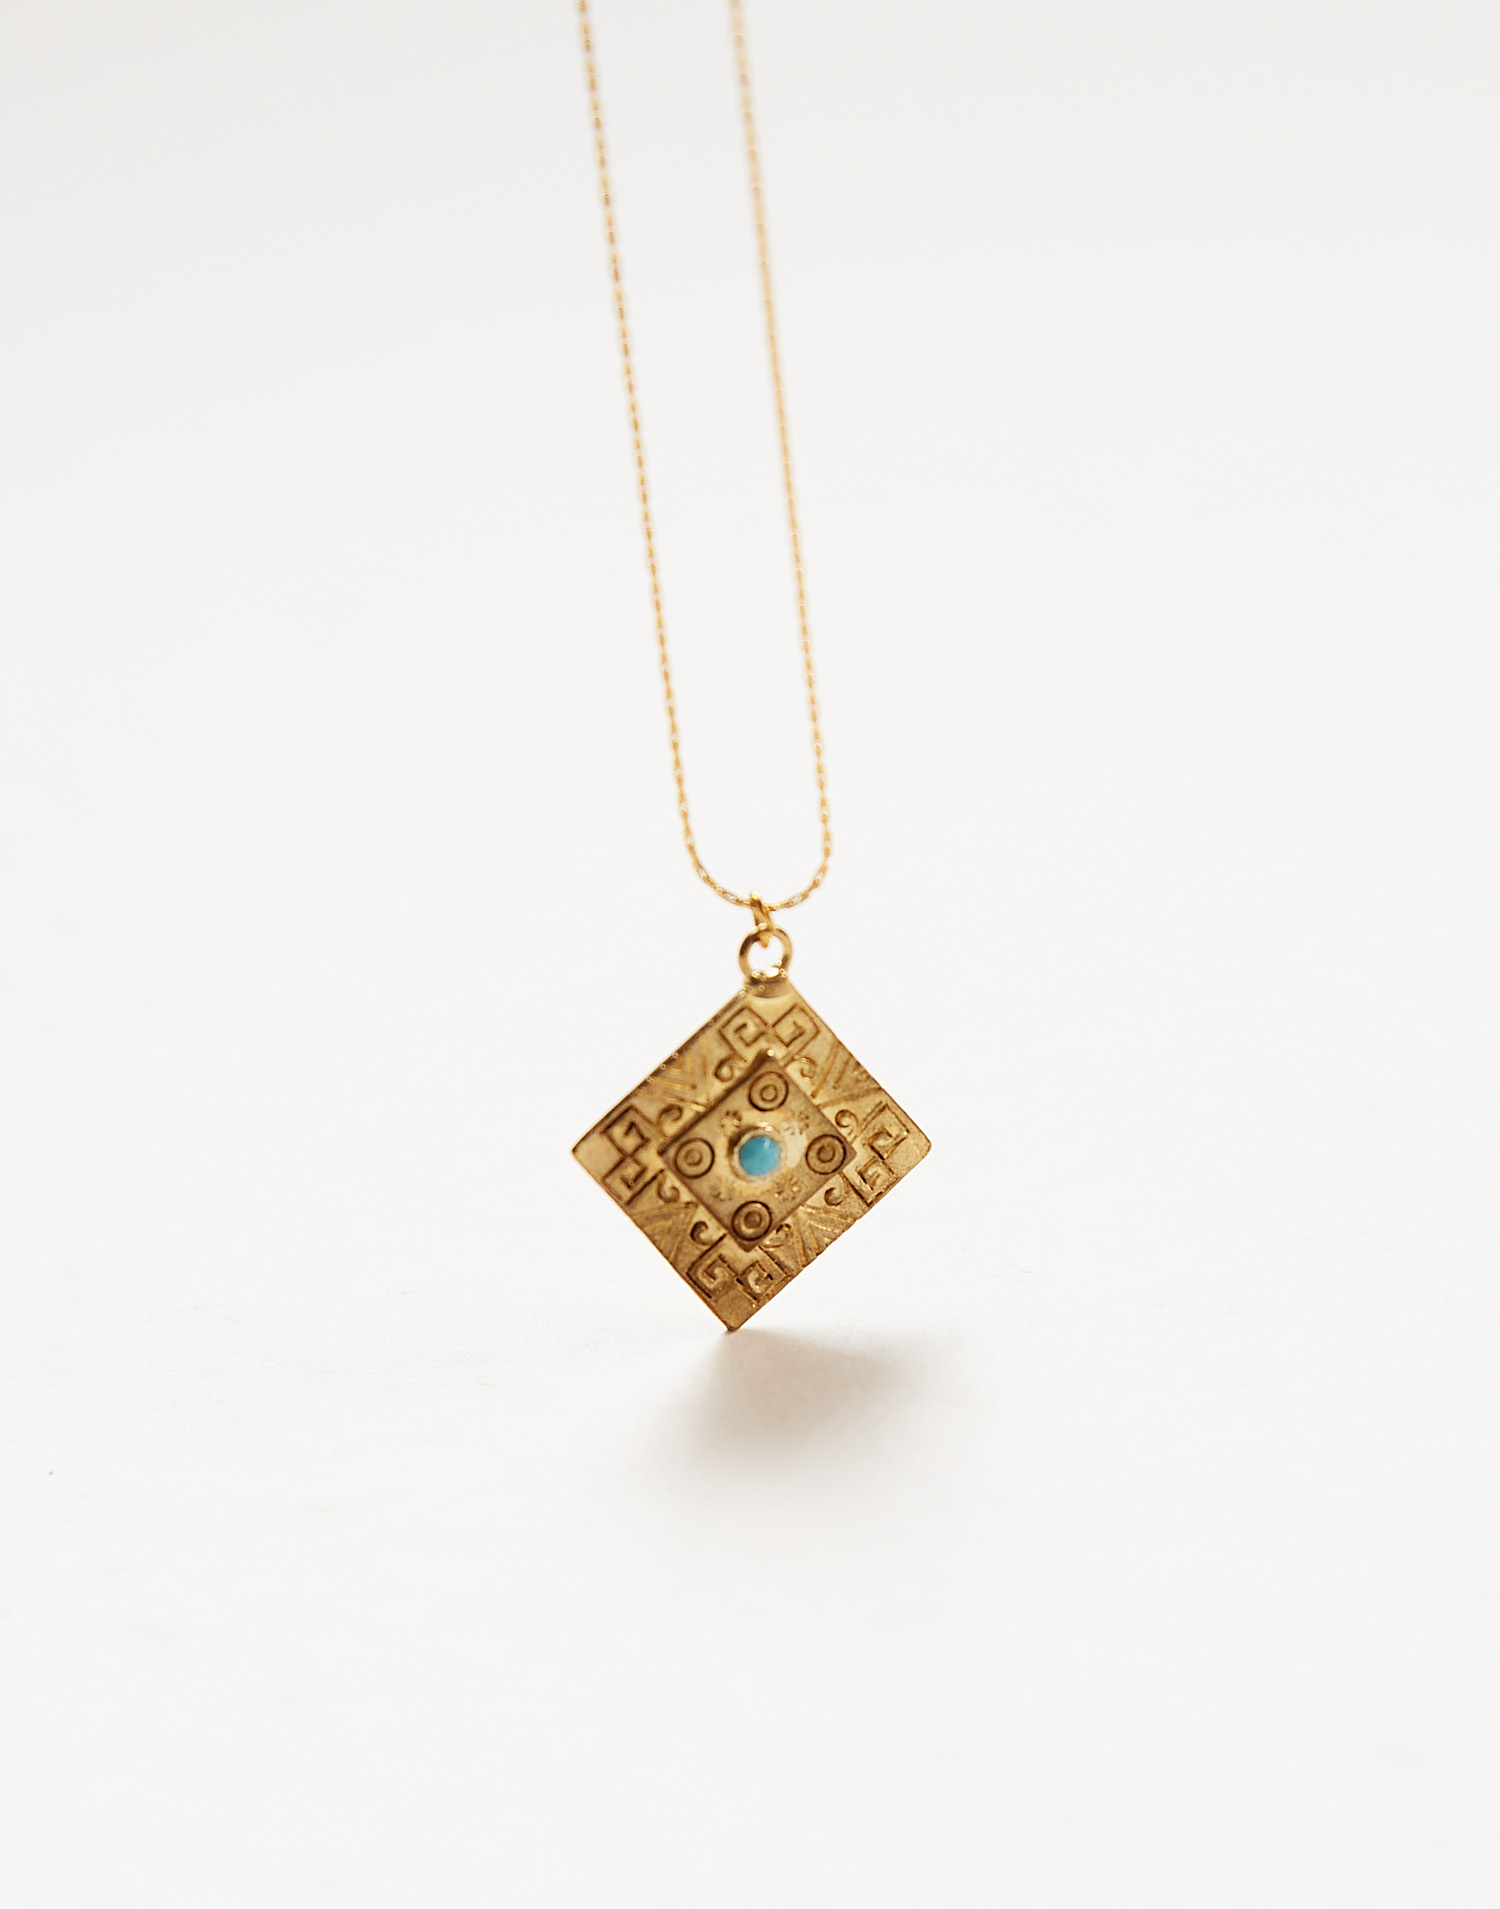 Triangular pendant necklace